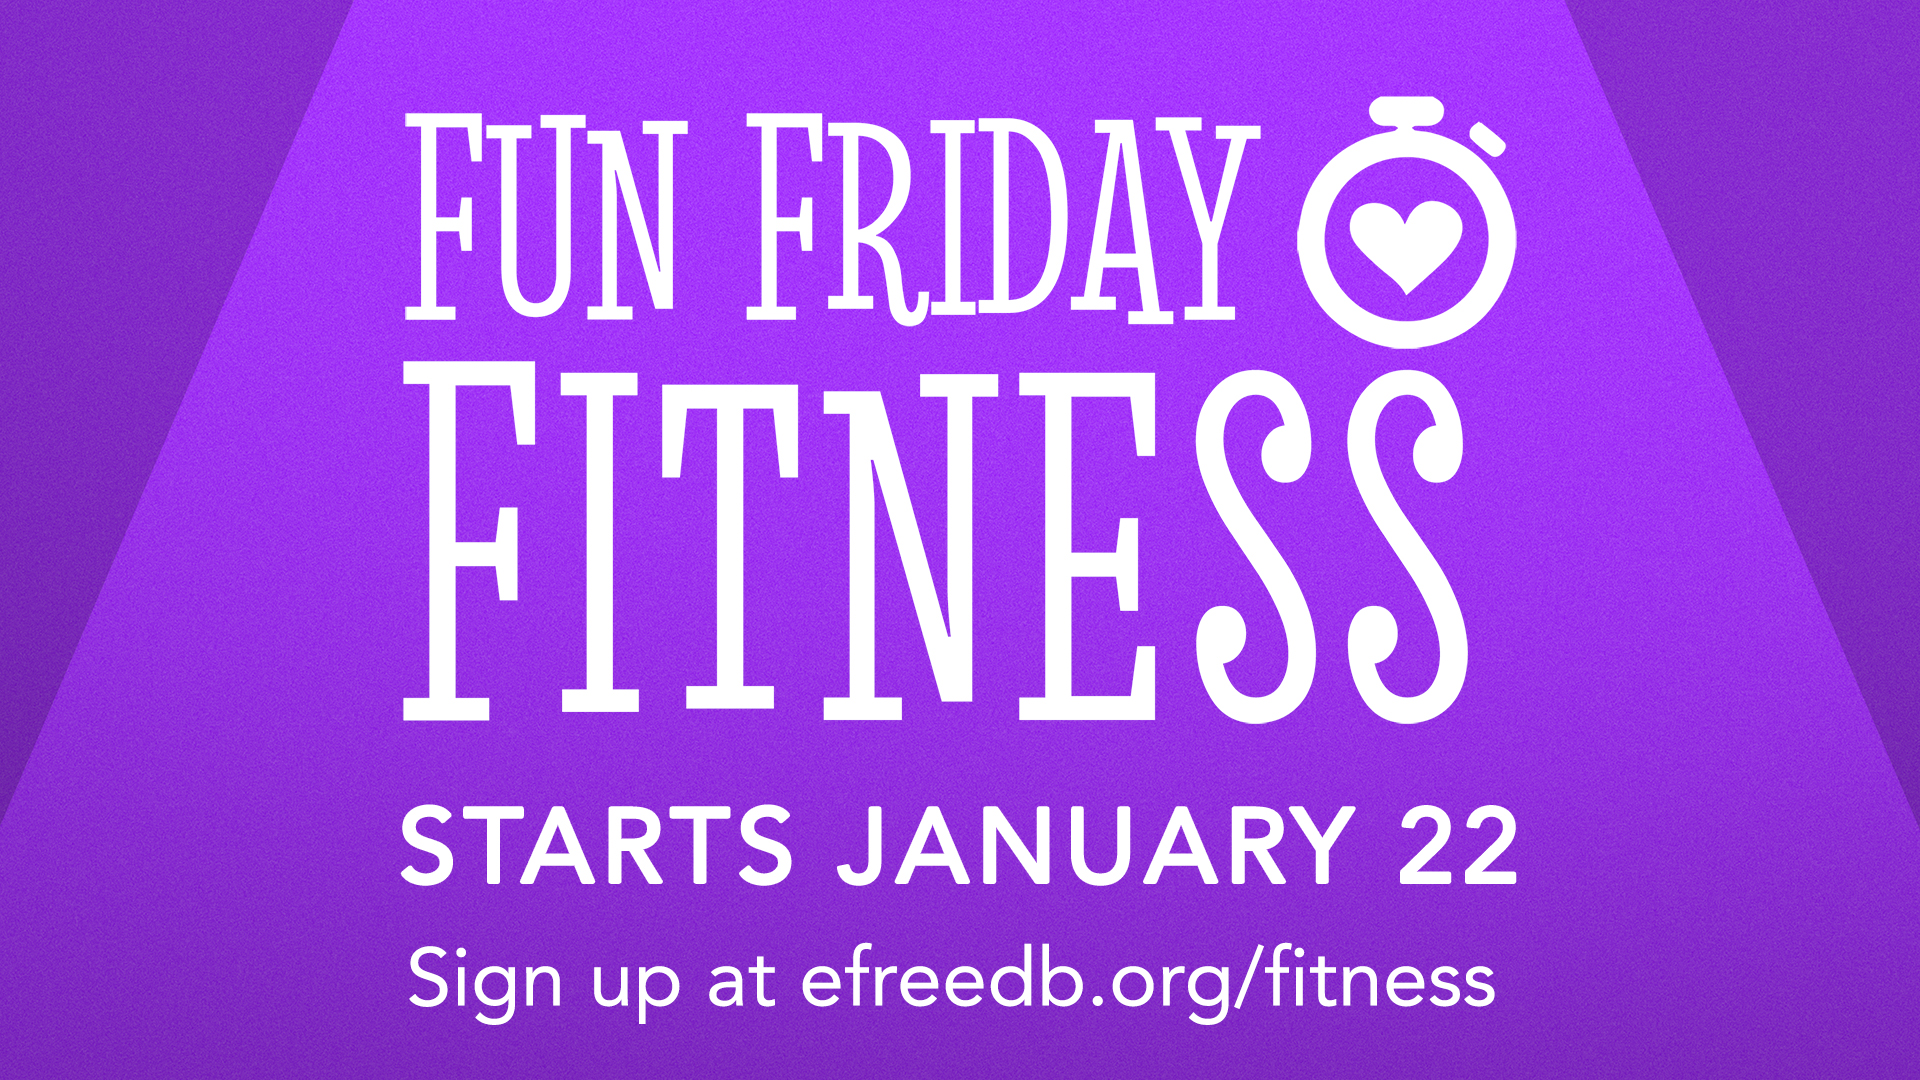 FUN FRIDAY FITNESS Facebook Event image